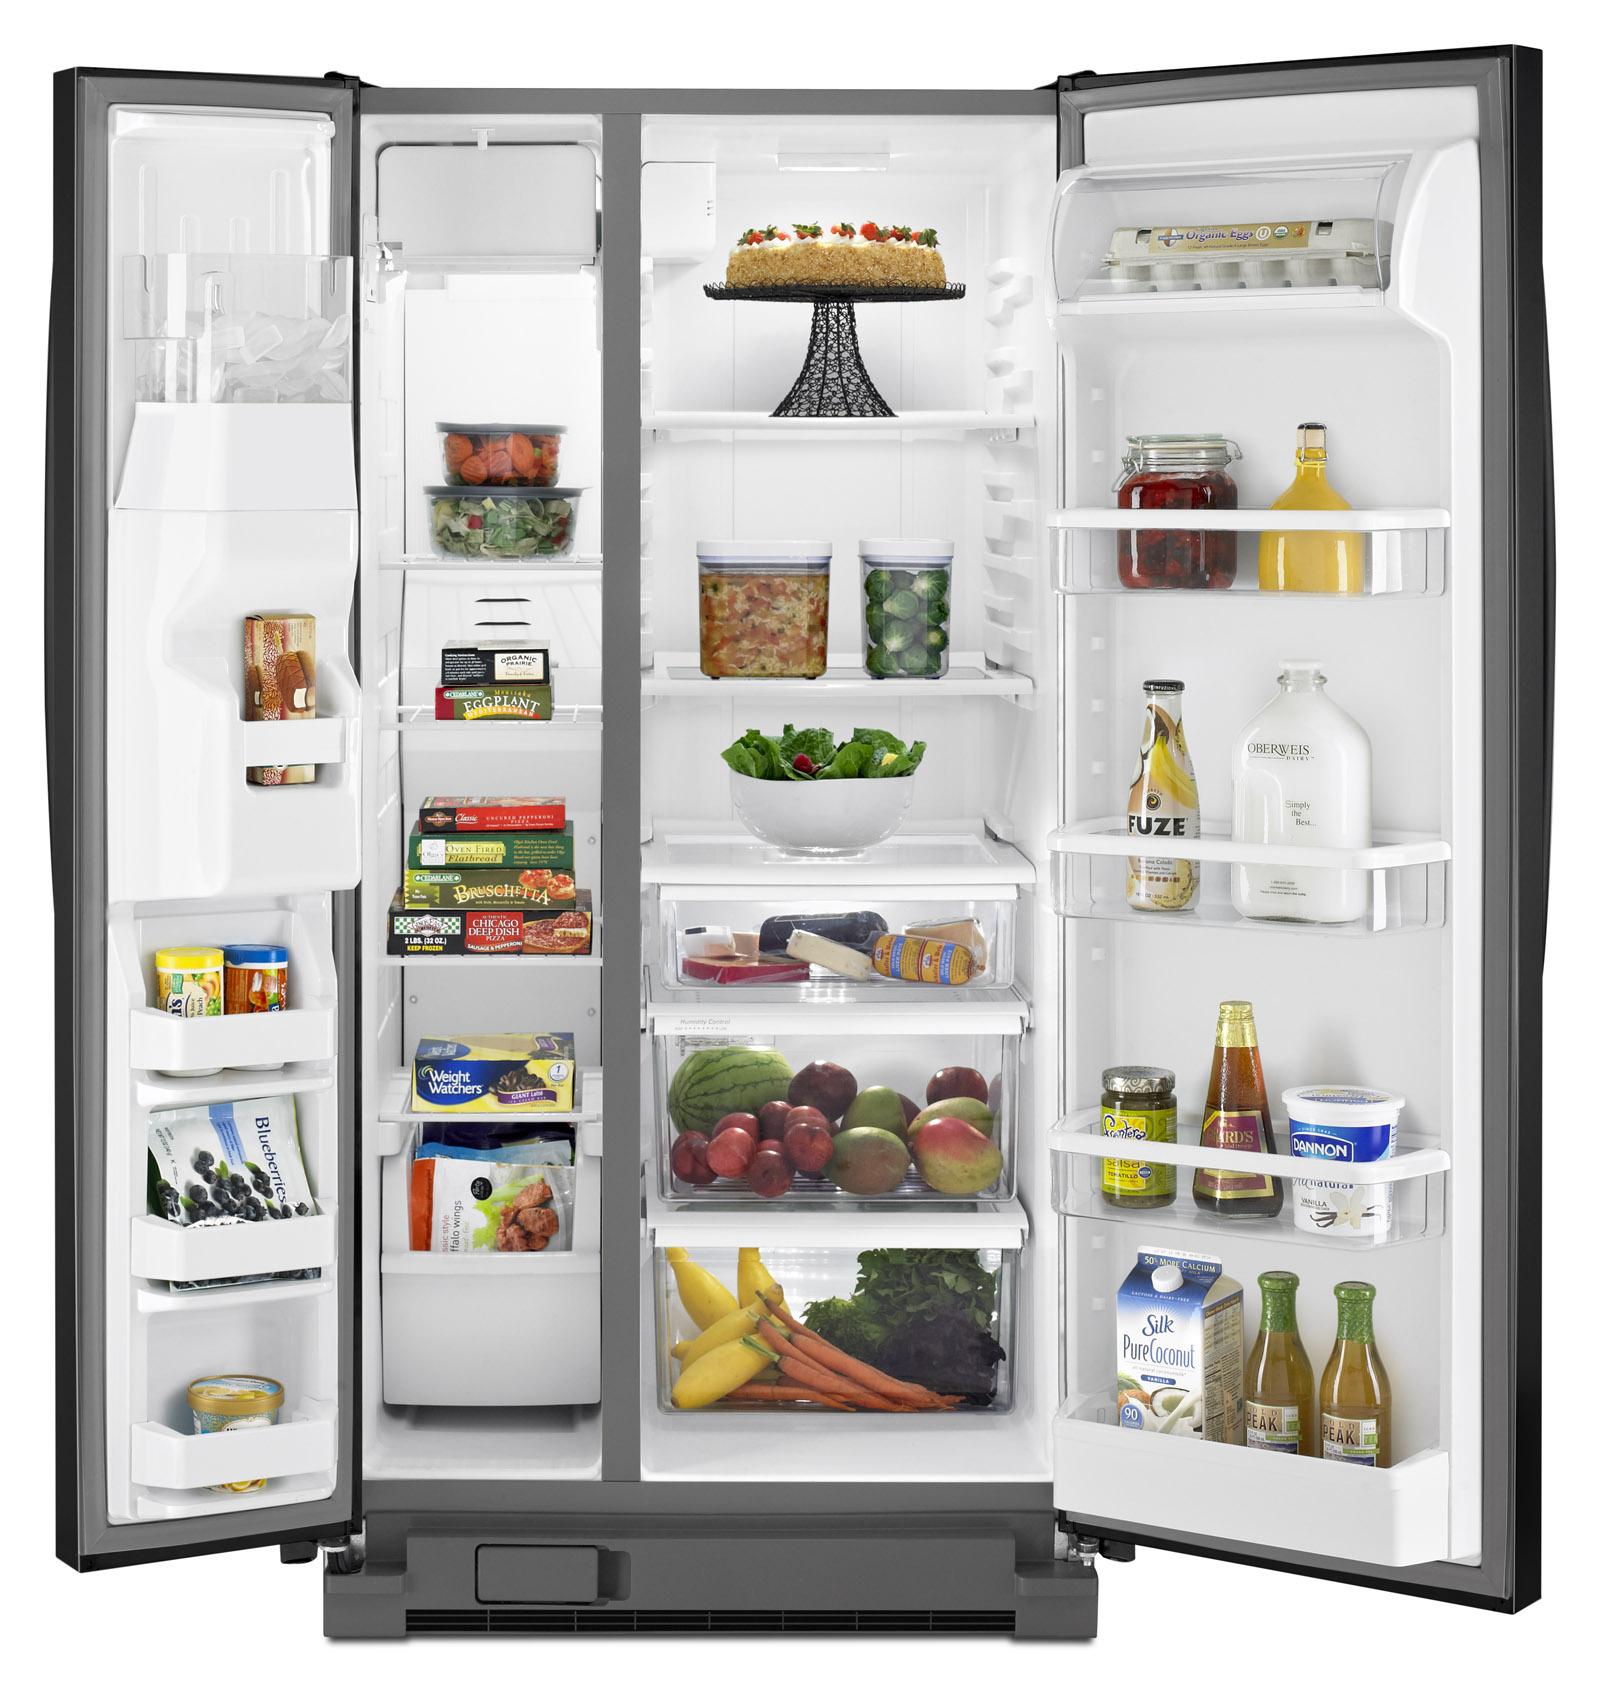 Whirlpool WRS342FIAB 21.3 cu. ft.- Side-by-Side Refrigerator - Black